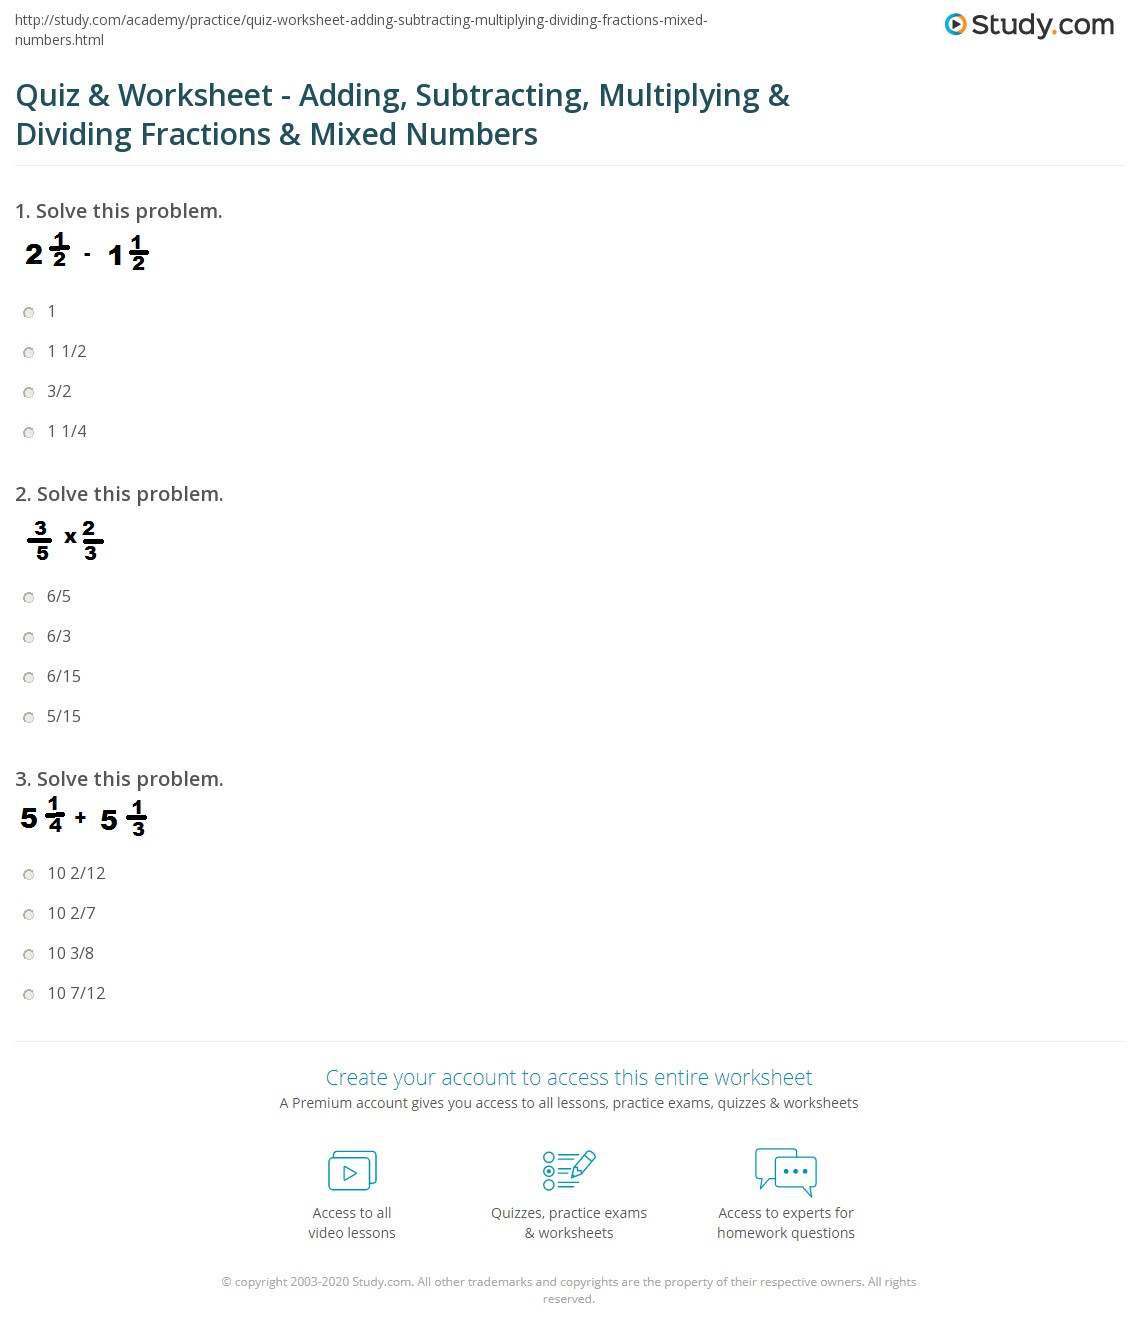 Quiz Worksheet Adding Subtracting Multiplying Dividing – Multiplying Mixed Fractions Worksheets